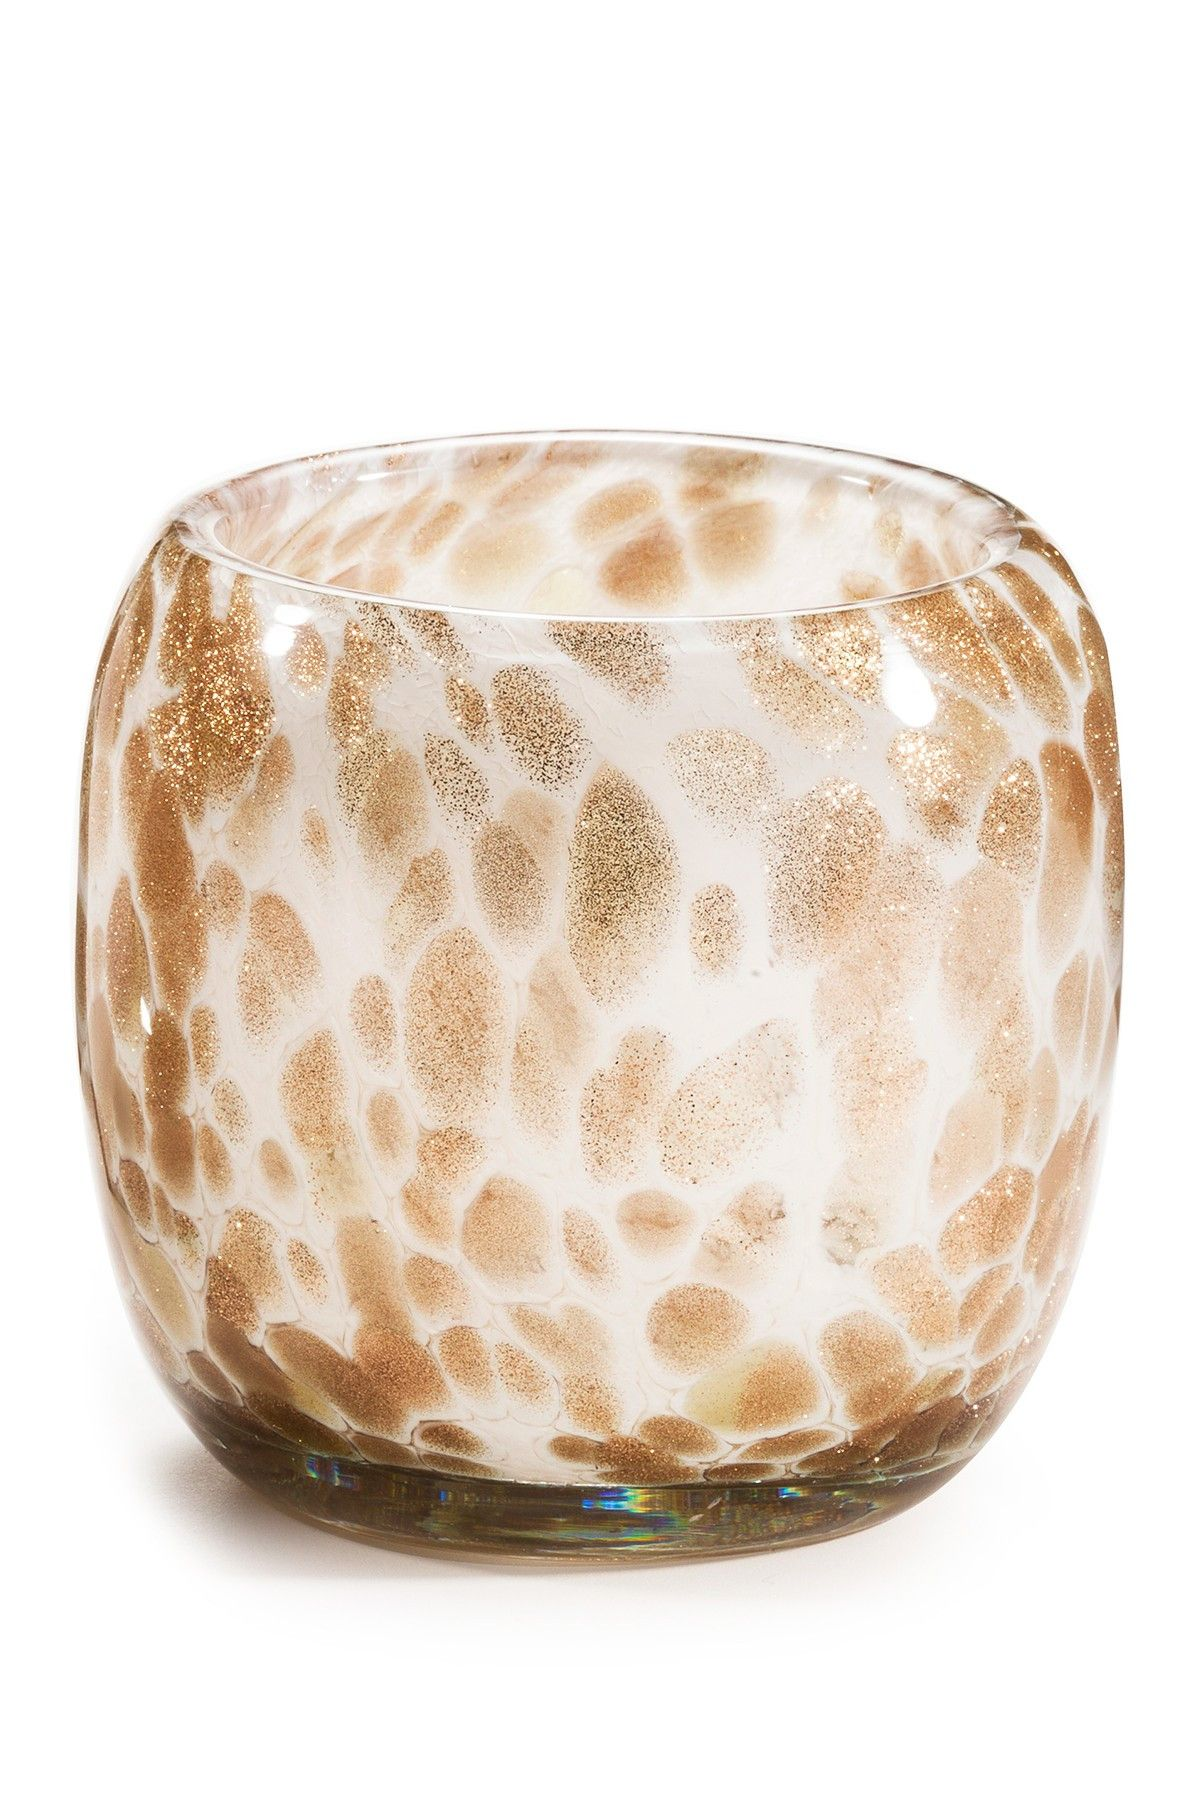 Glitter-spangled glass looks beautiful whether used as a votive holder or a vase.